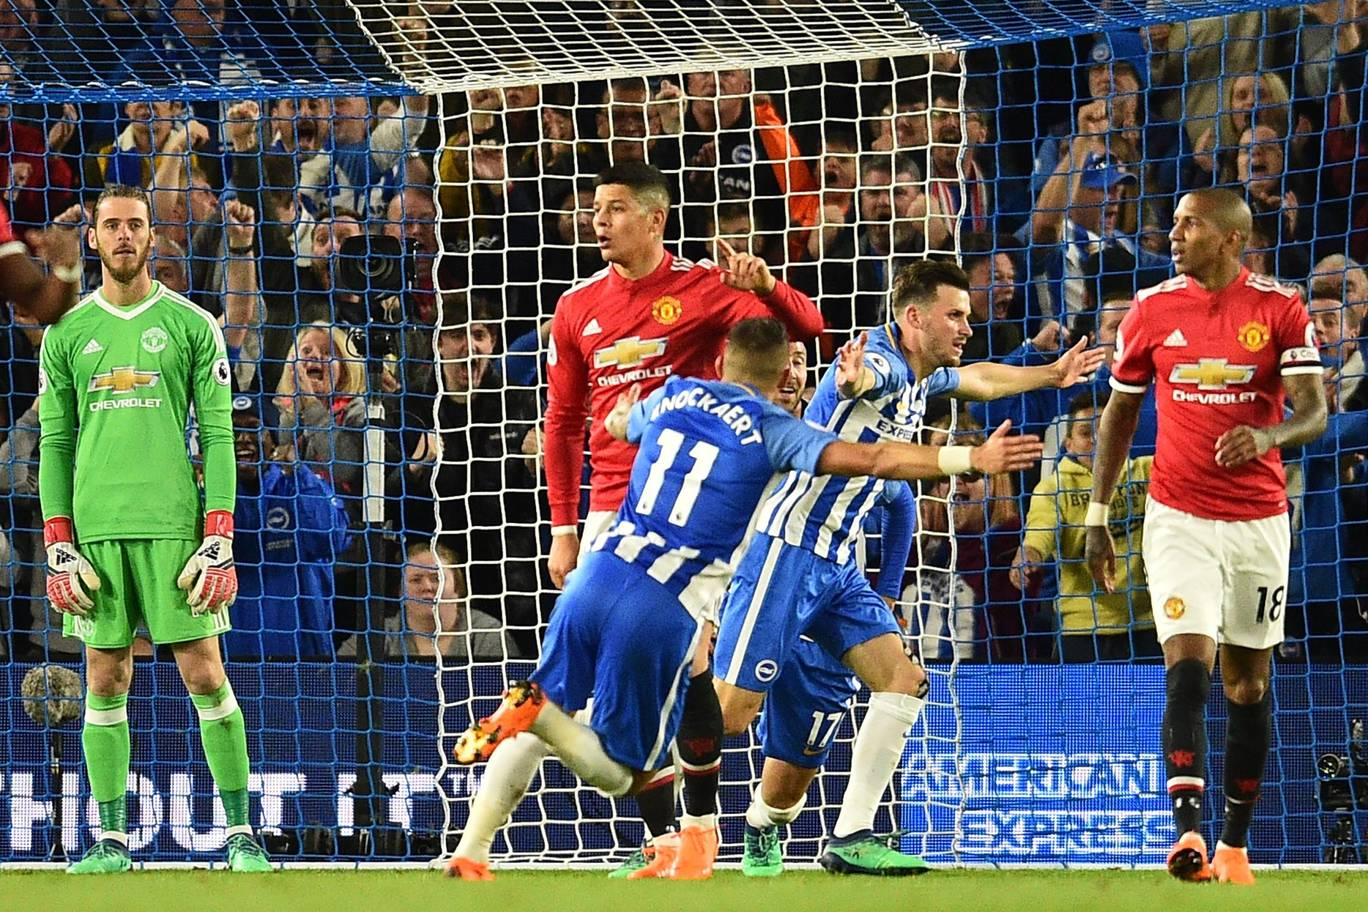 Brighton's Steve Sidwell Hails 'Fantastic' Season After Defaeting Manchester United